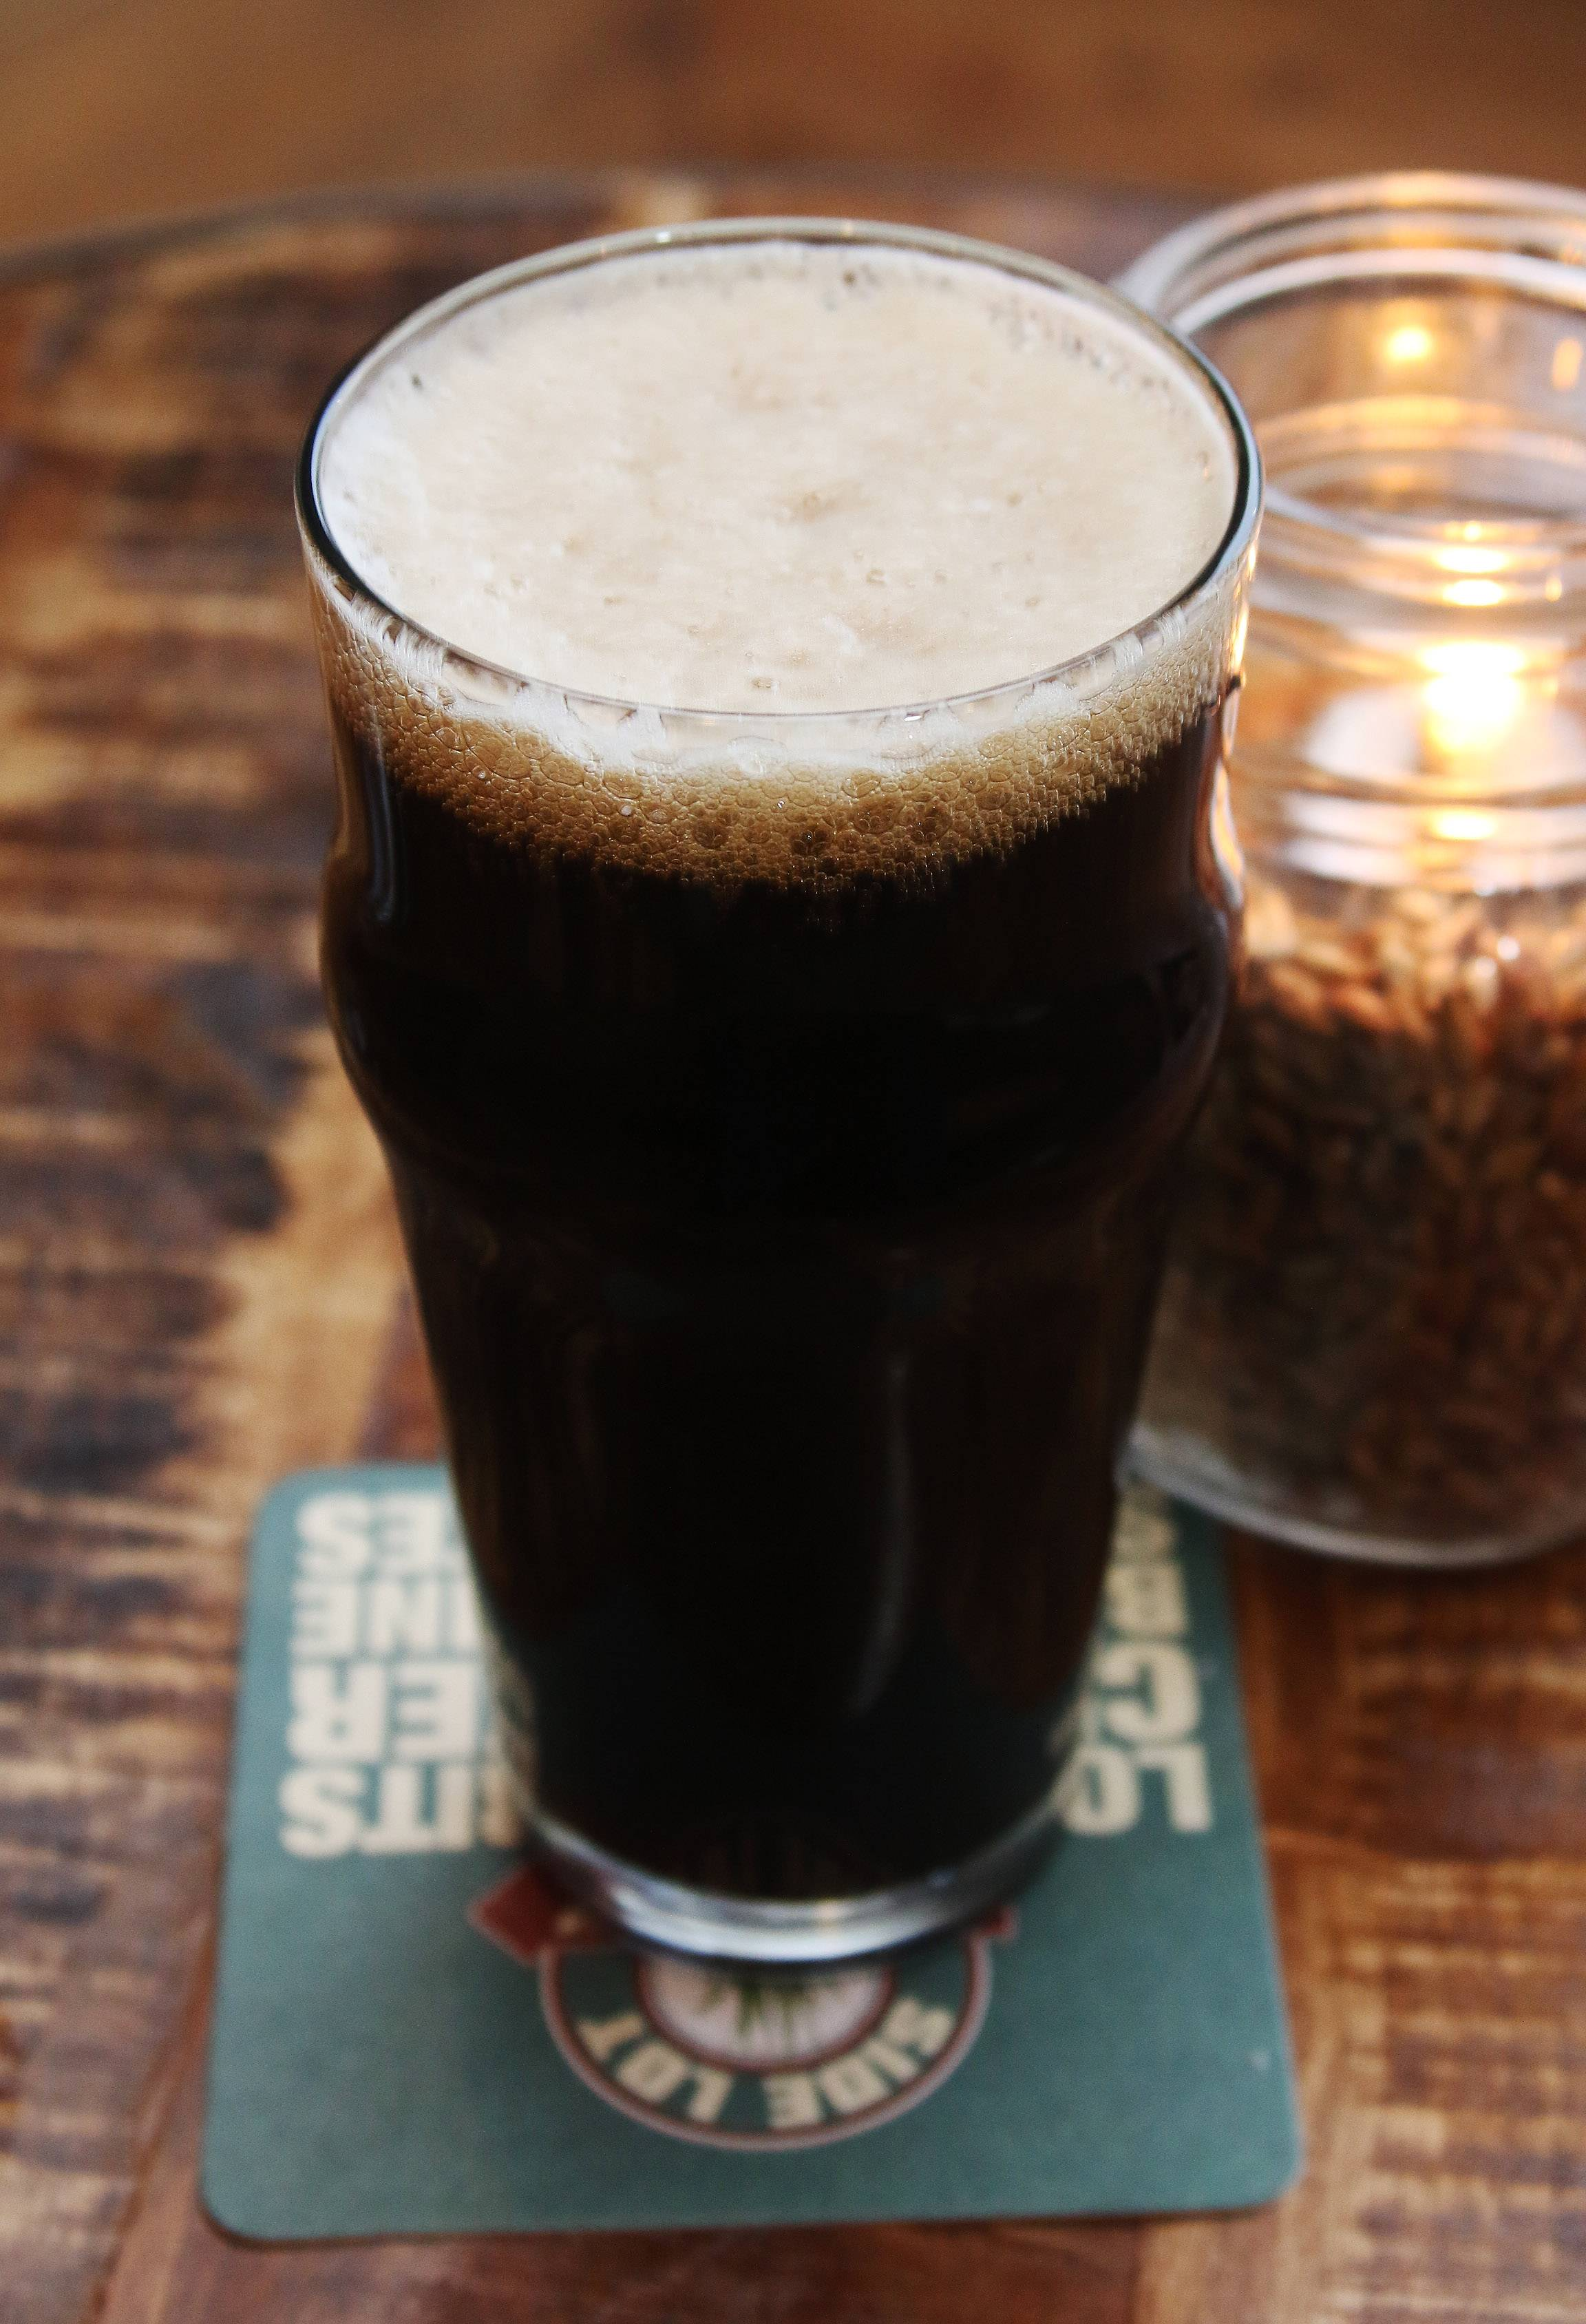 Smokin' Squirrel English Brown Ale is brewed at Side Lot Brewery in Wauconda.